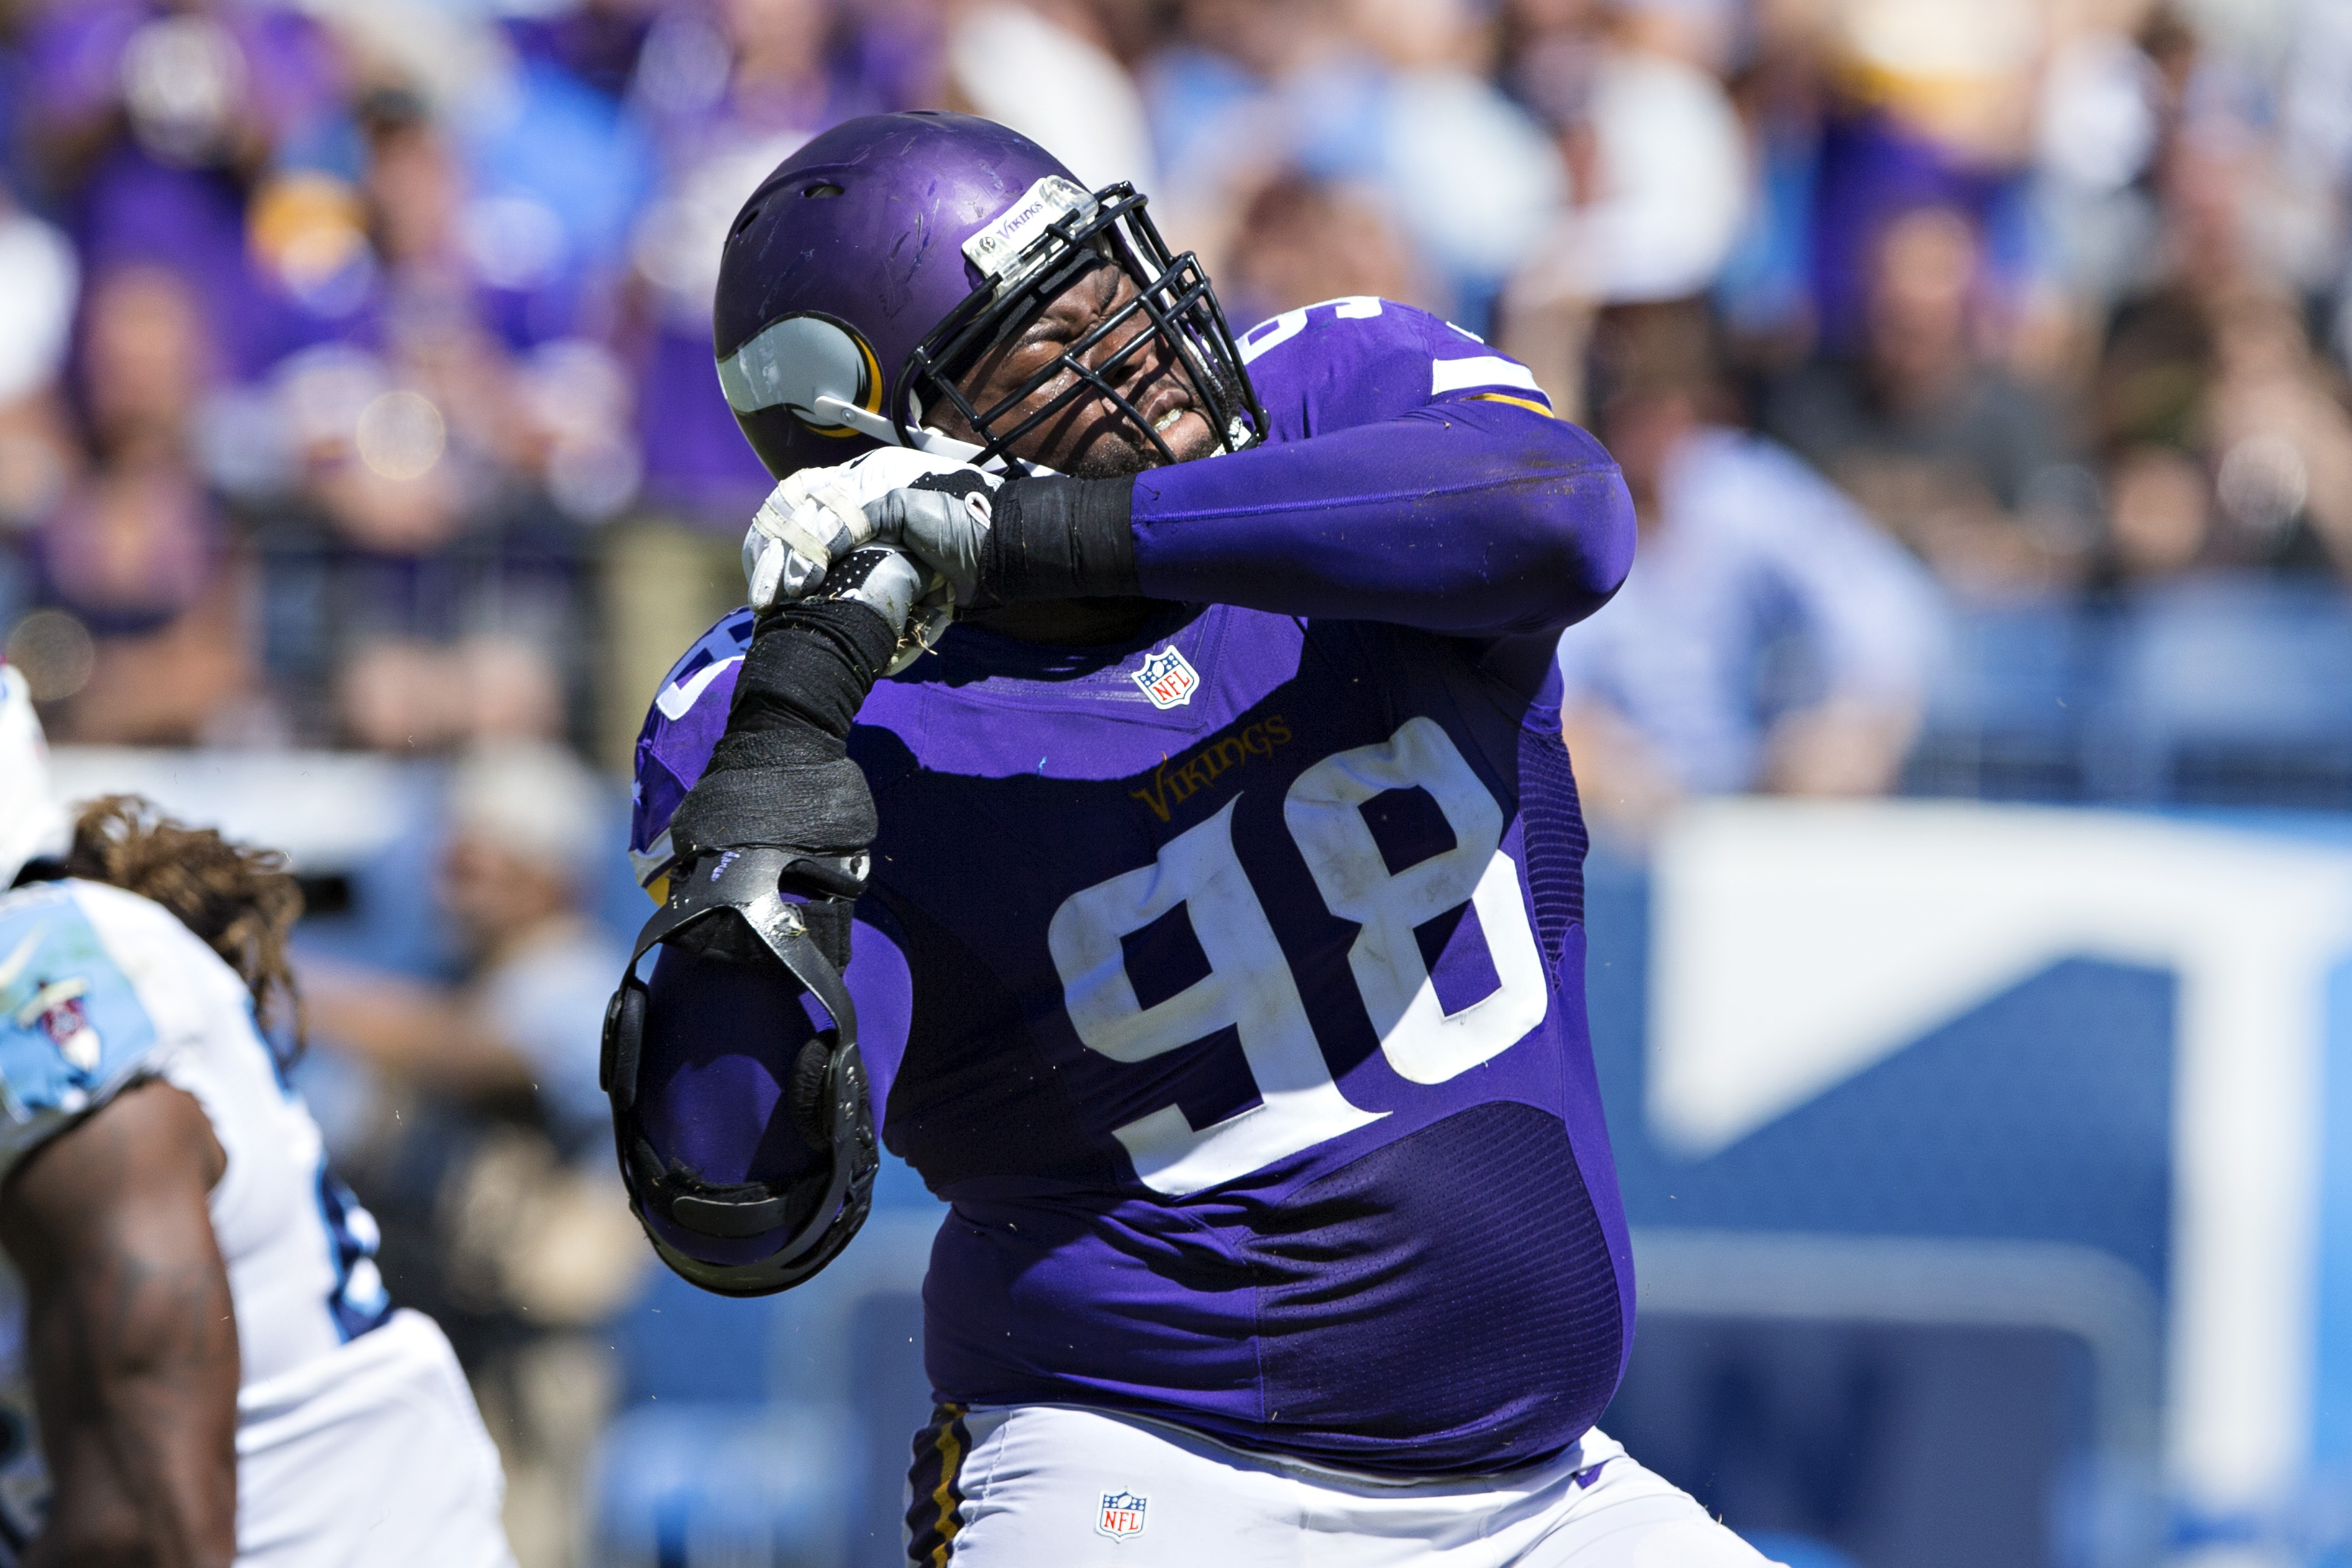 Linval Joseph excited for a new role with the Chargers